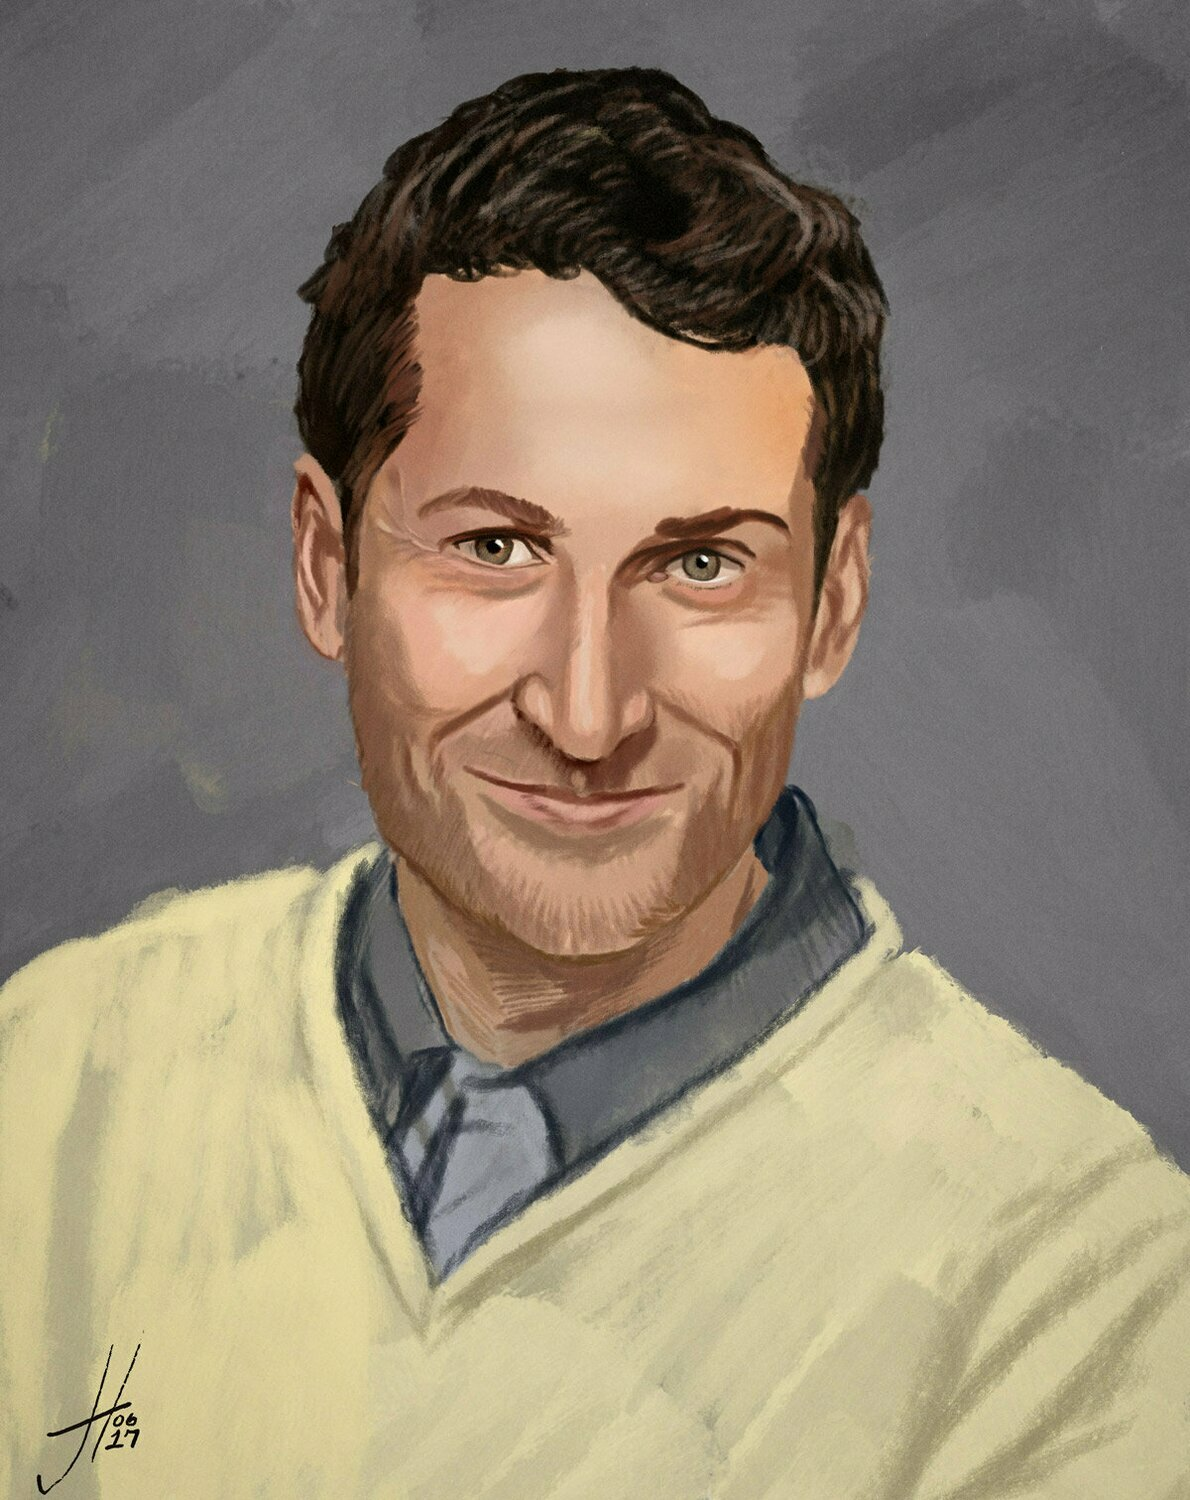 Comedy Bang Bang Scott Aukerman art print